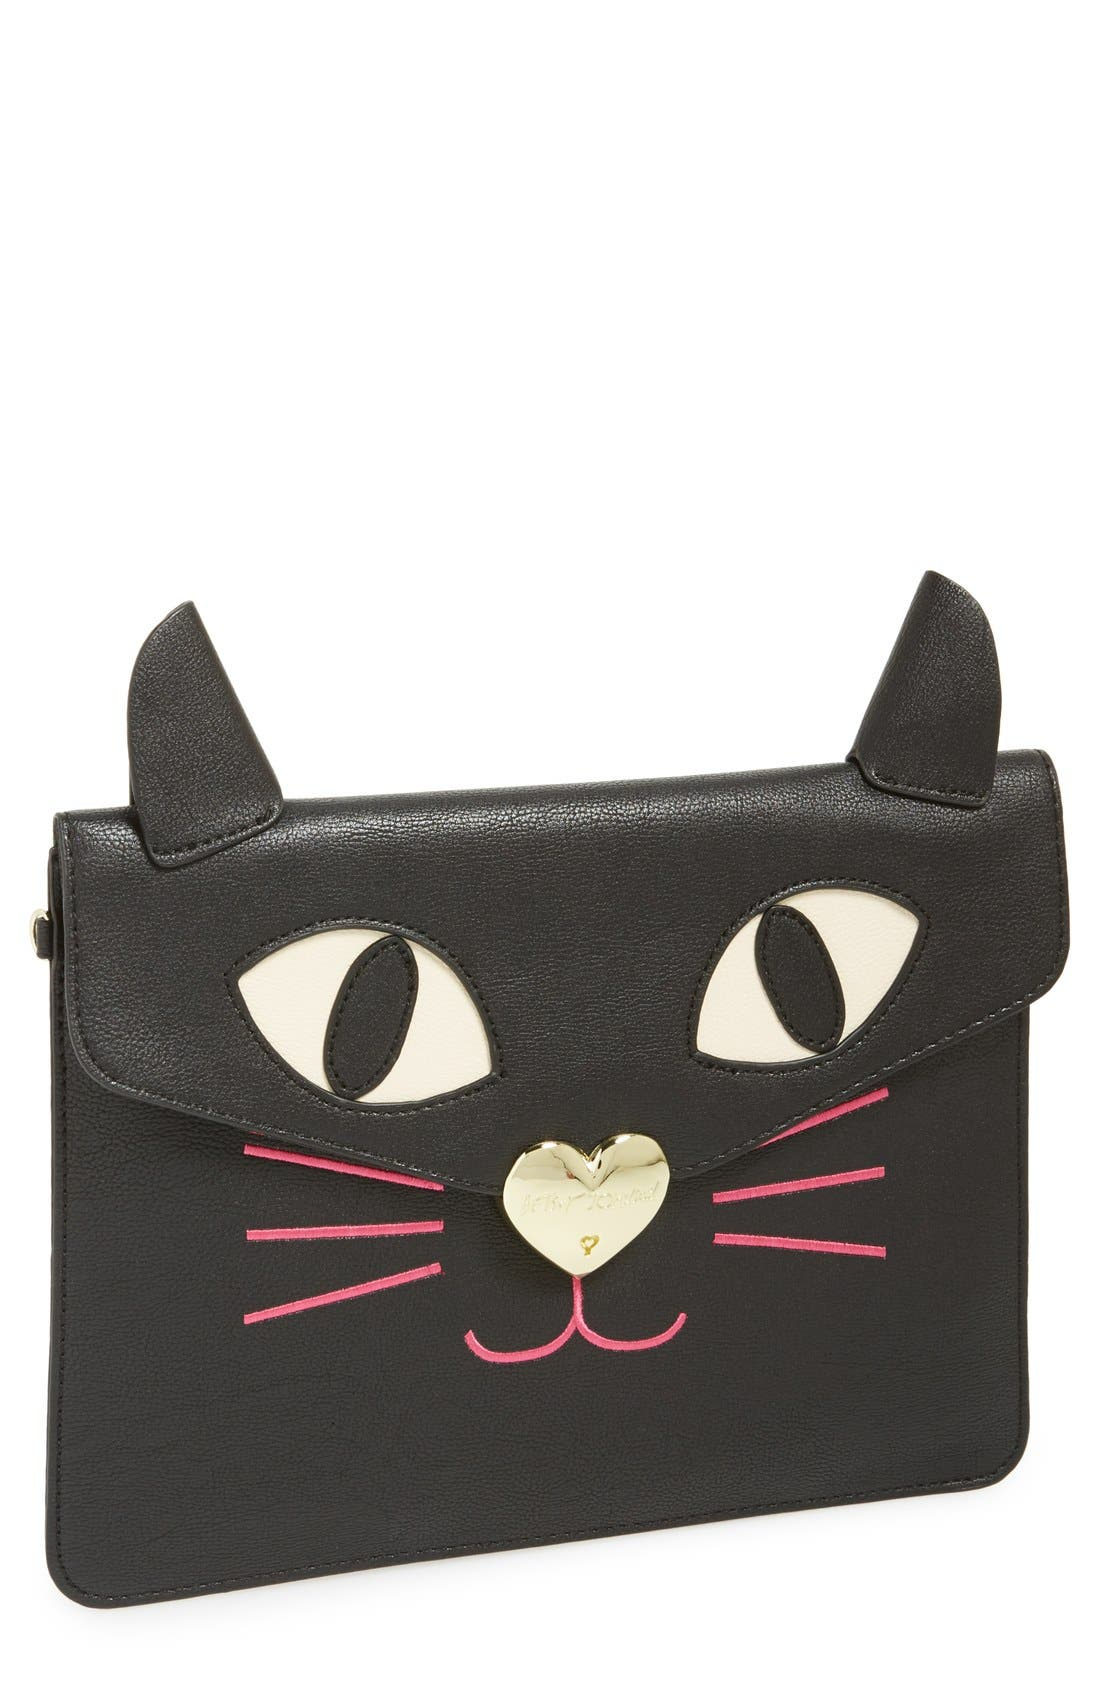 Alternate Image 1 Selected - Betsey Johnson Cat Clutch